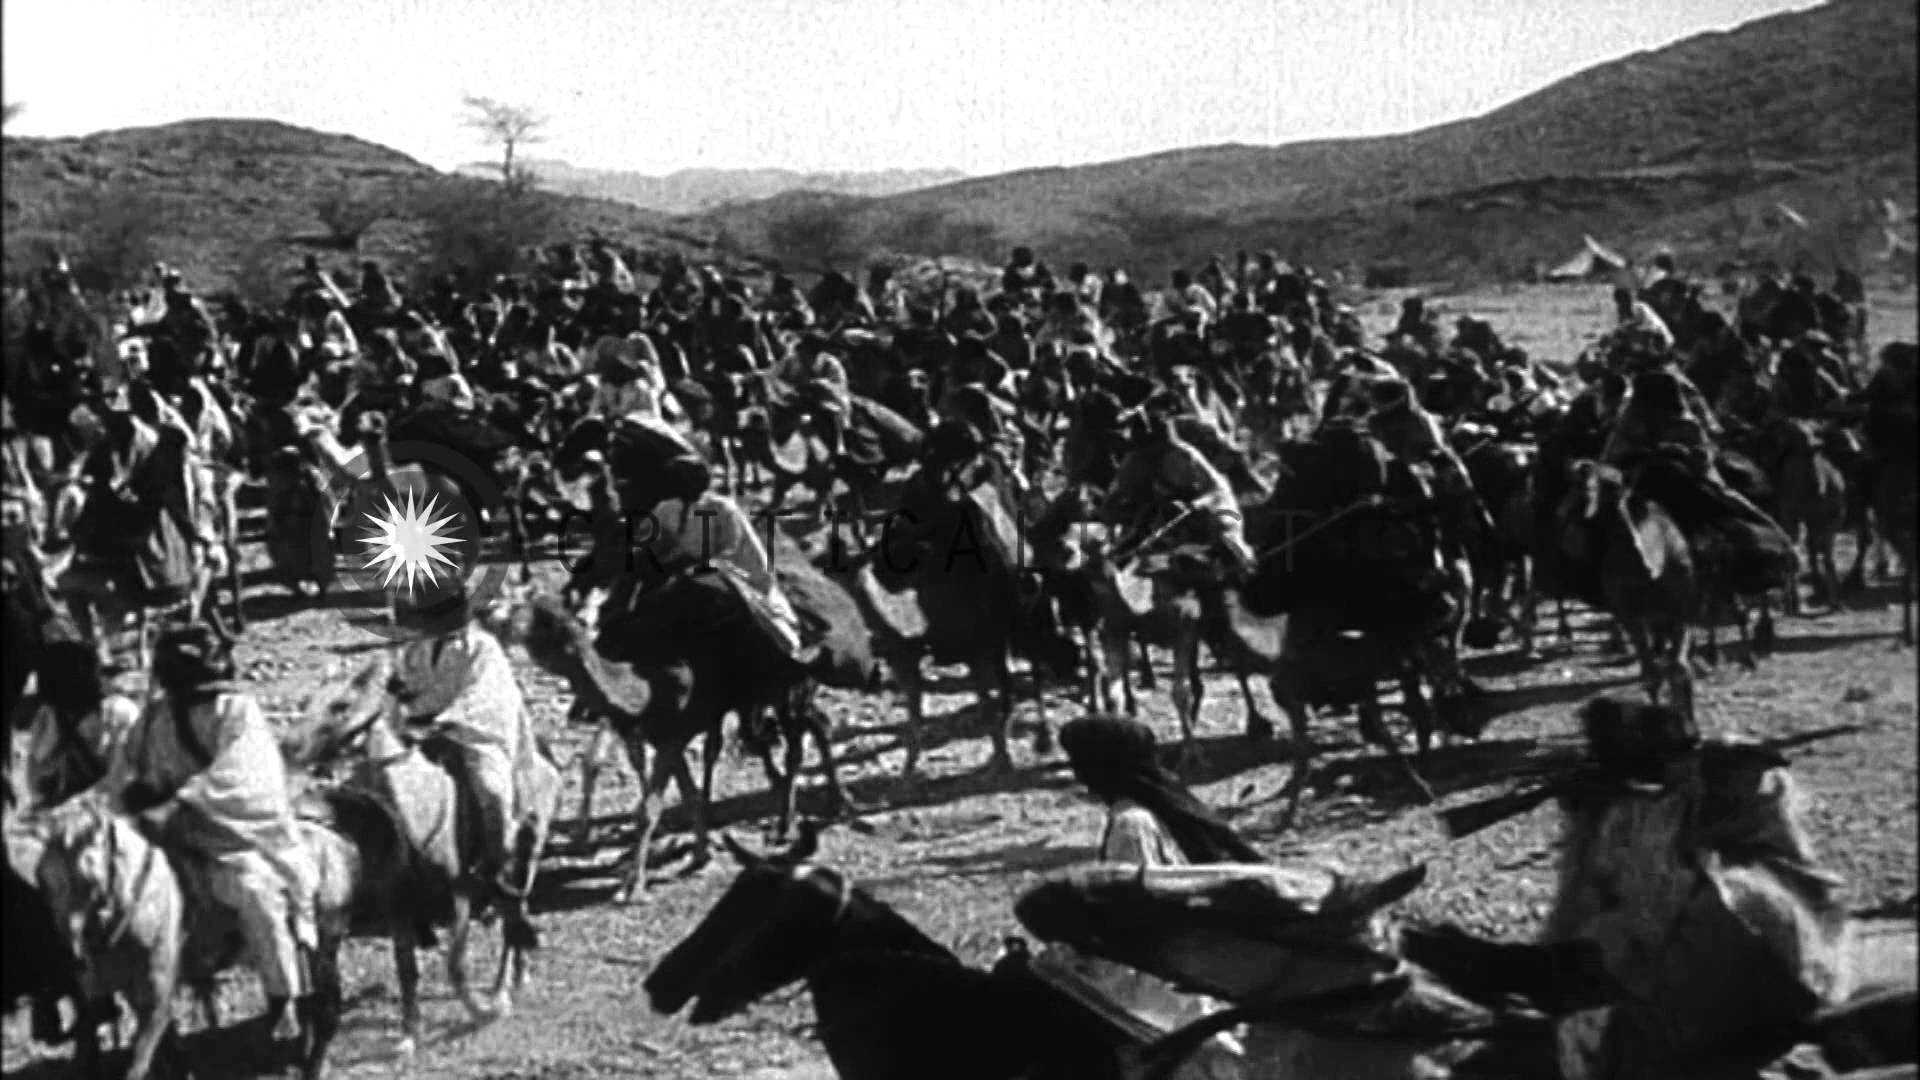 Arab troops in the Arab Revolt, date uncertain.